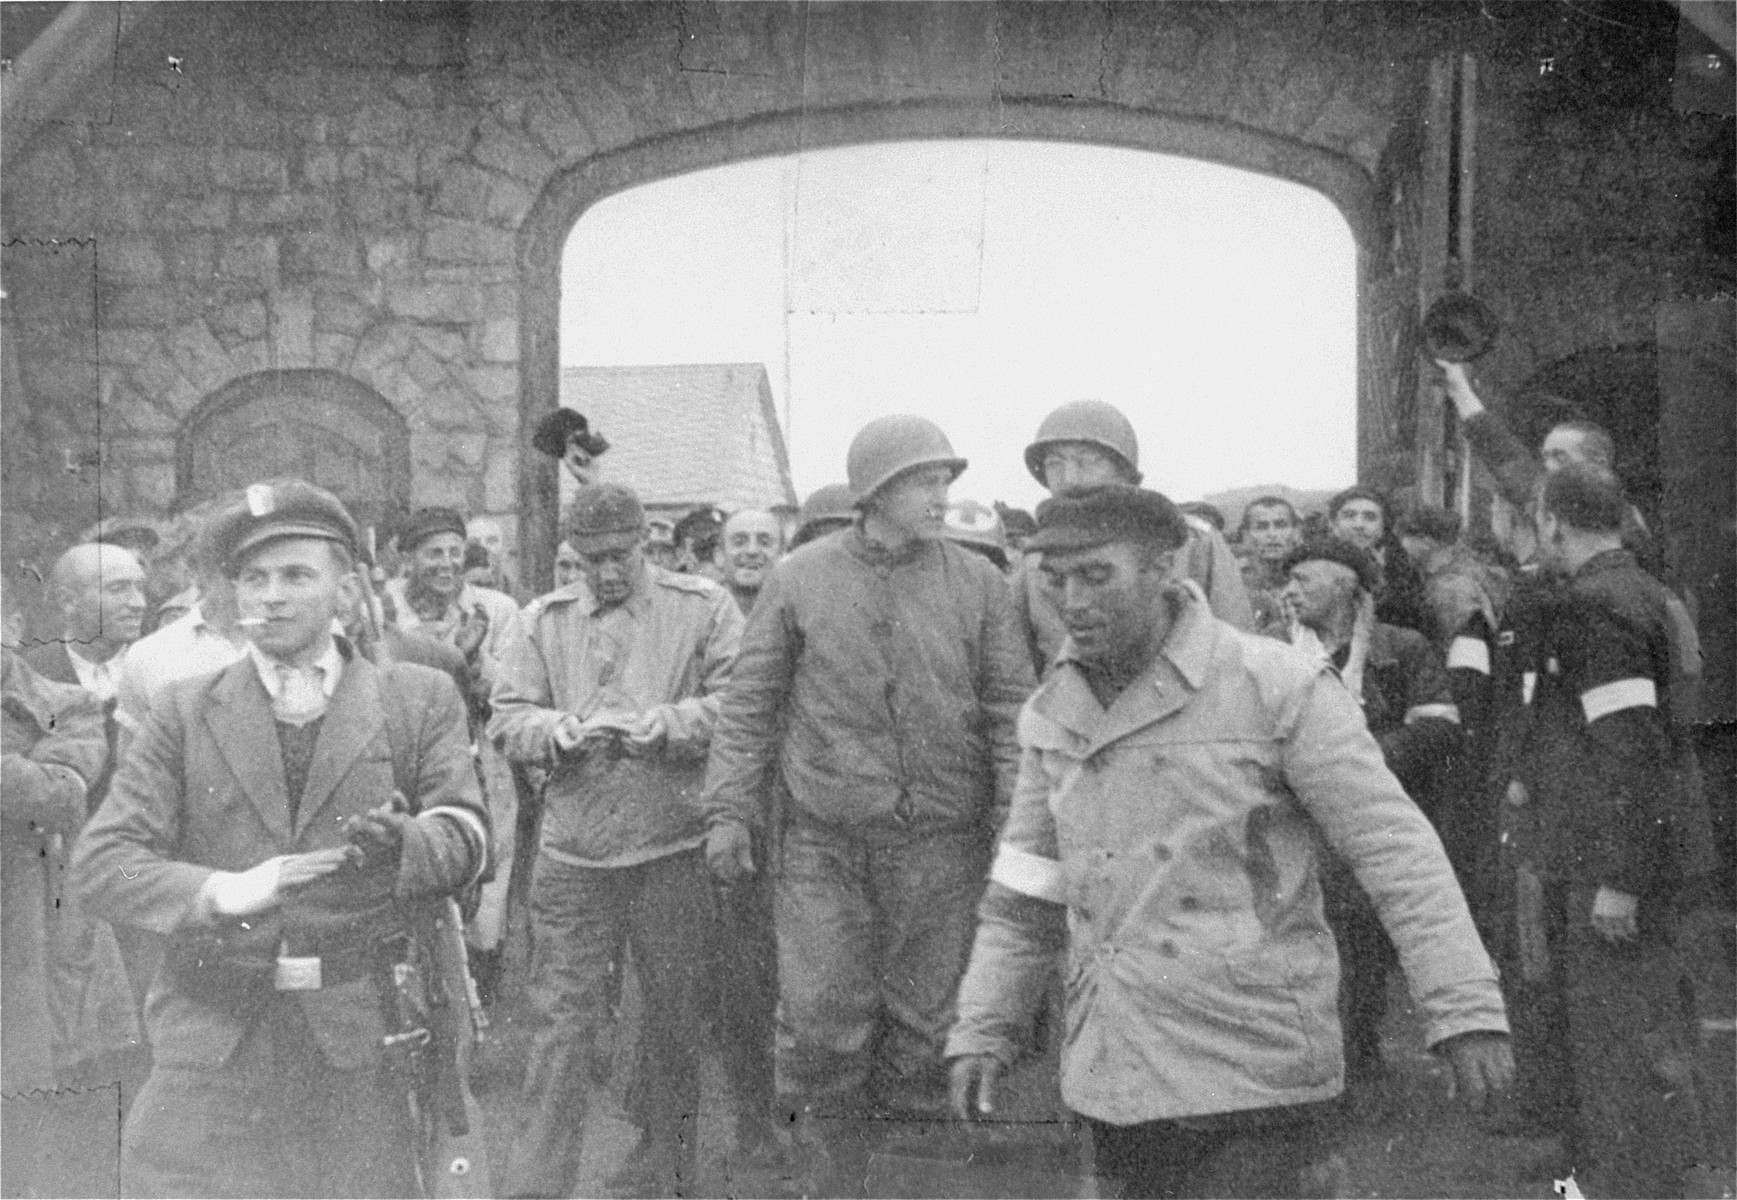 Mauthausen survivors greet American soldiers as they enter the gates of the concentration camp.